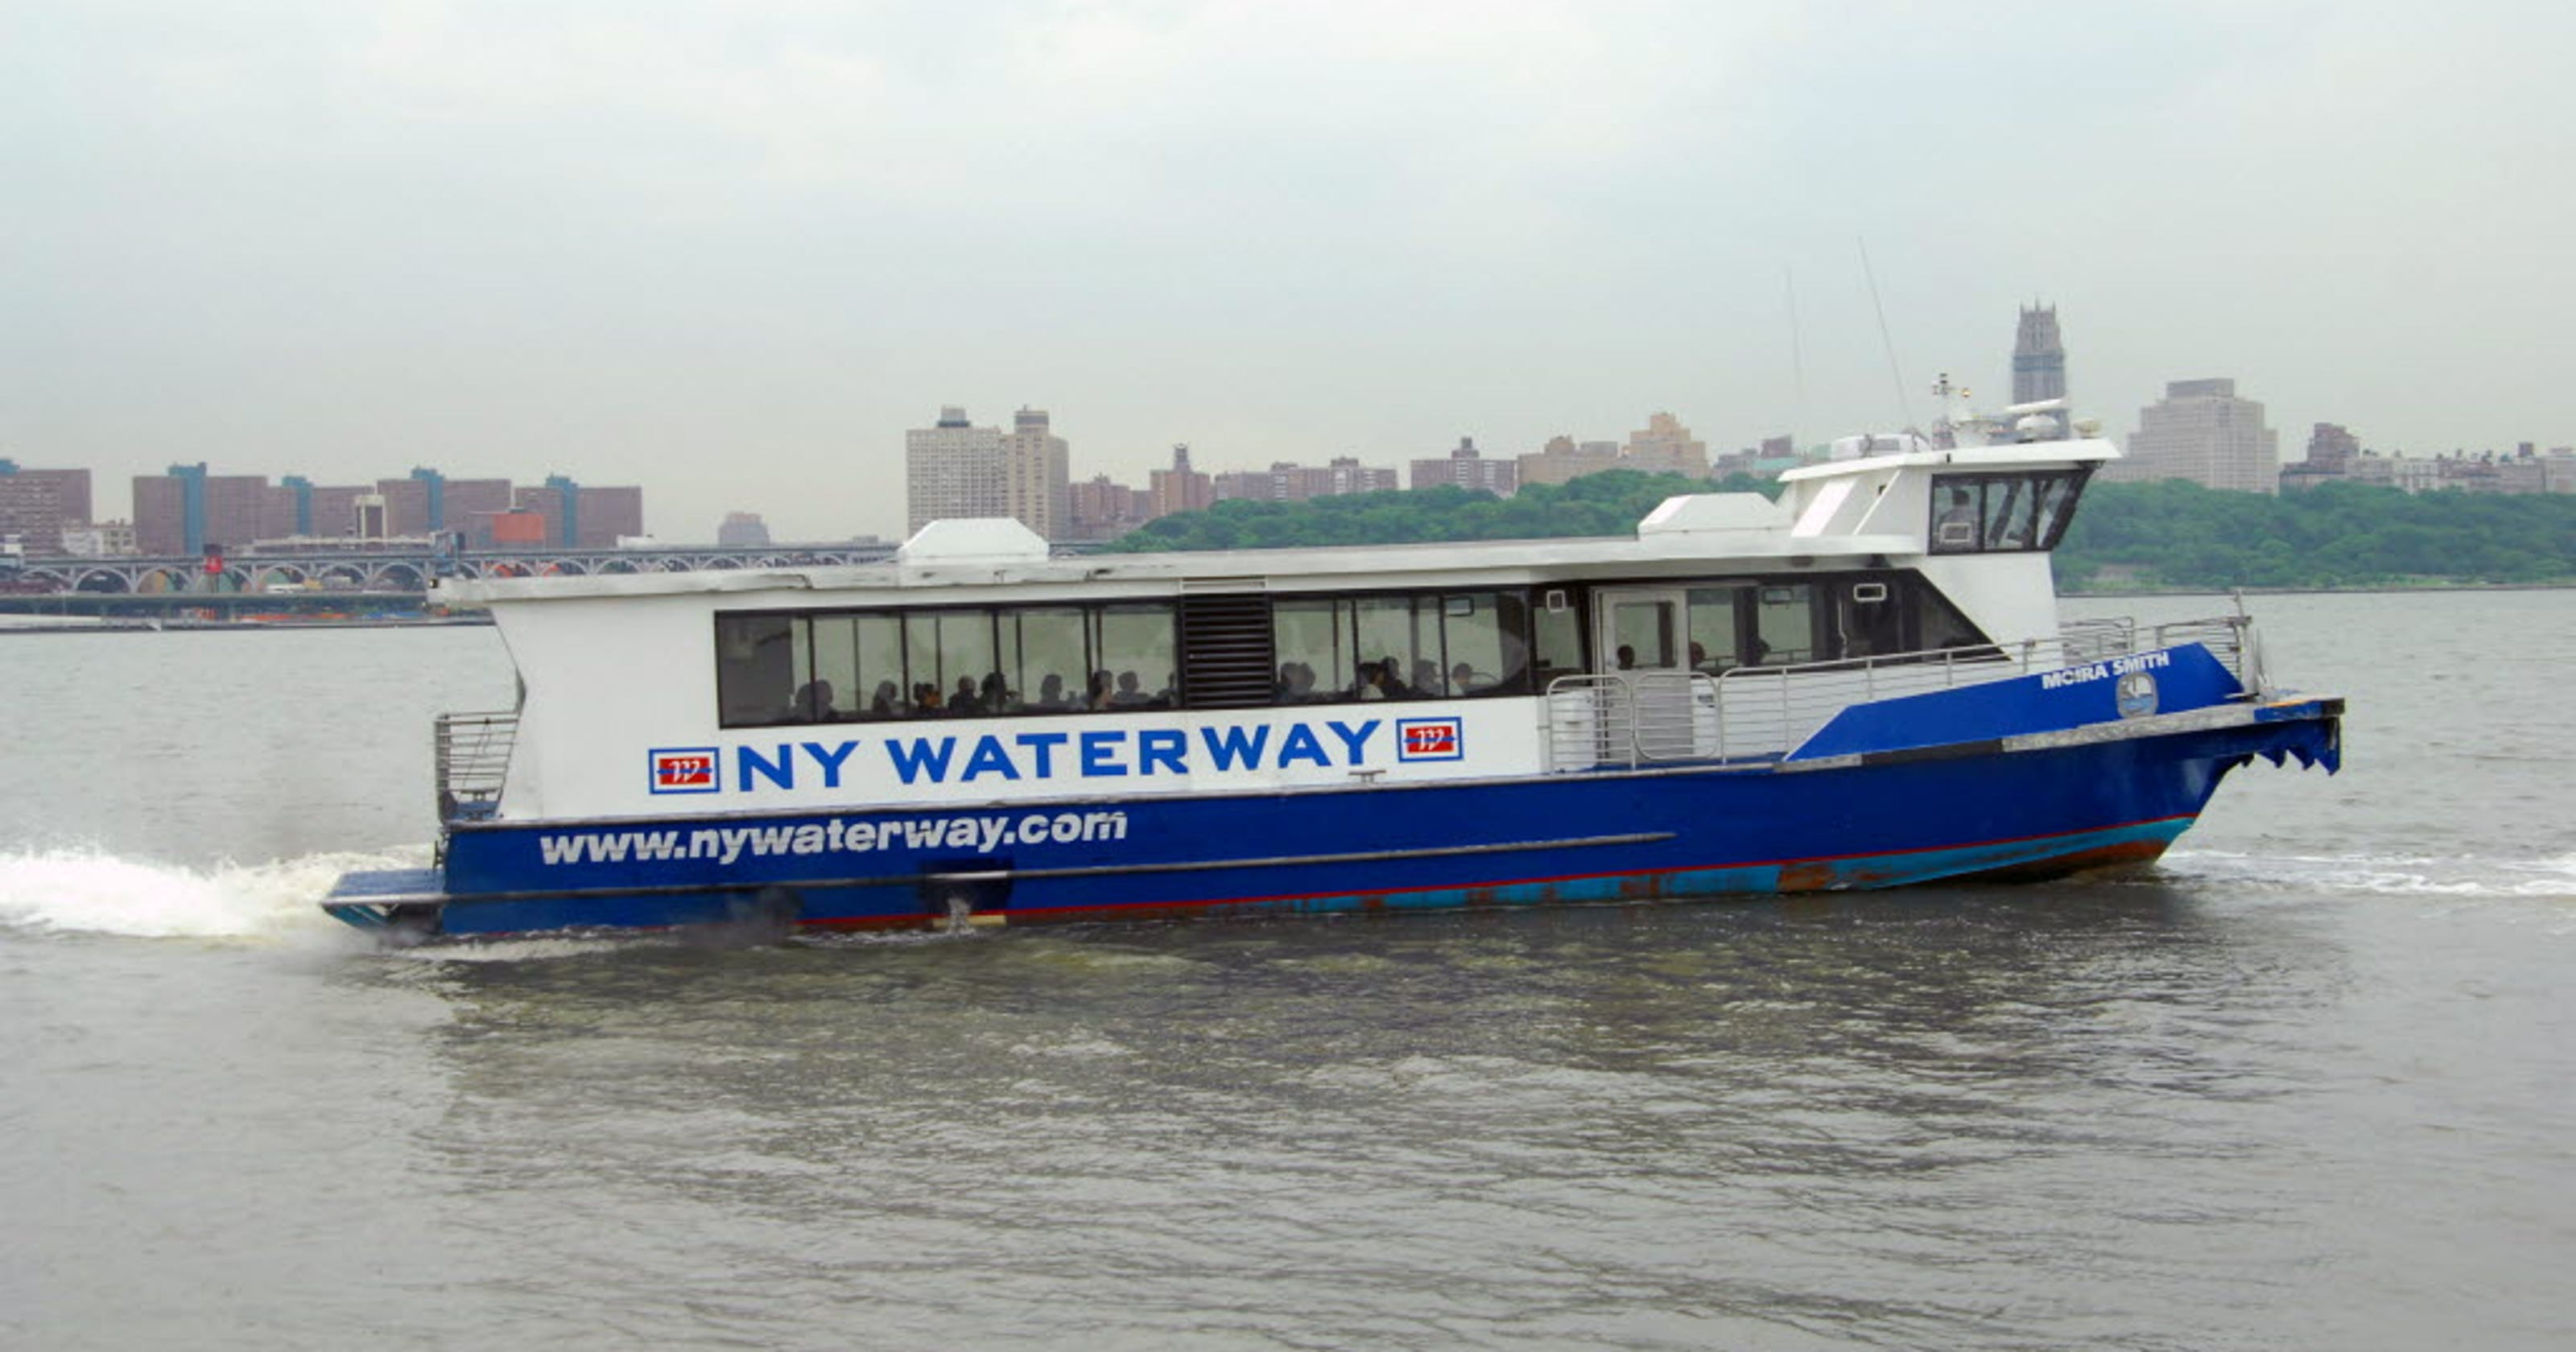 ny waterway buys back 11 hudson river ferry routes